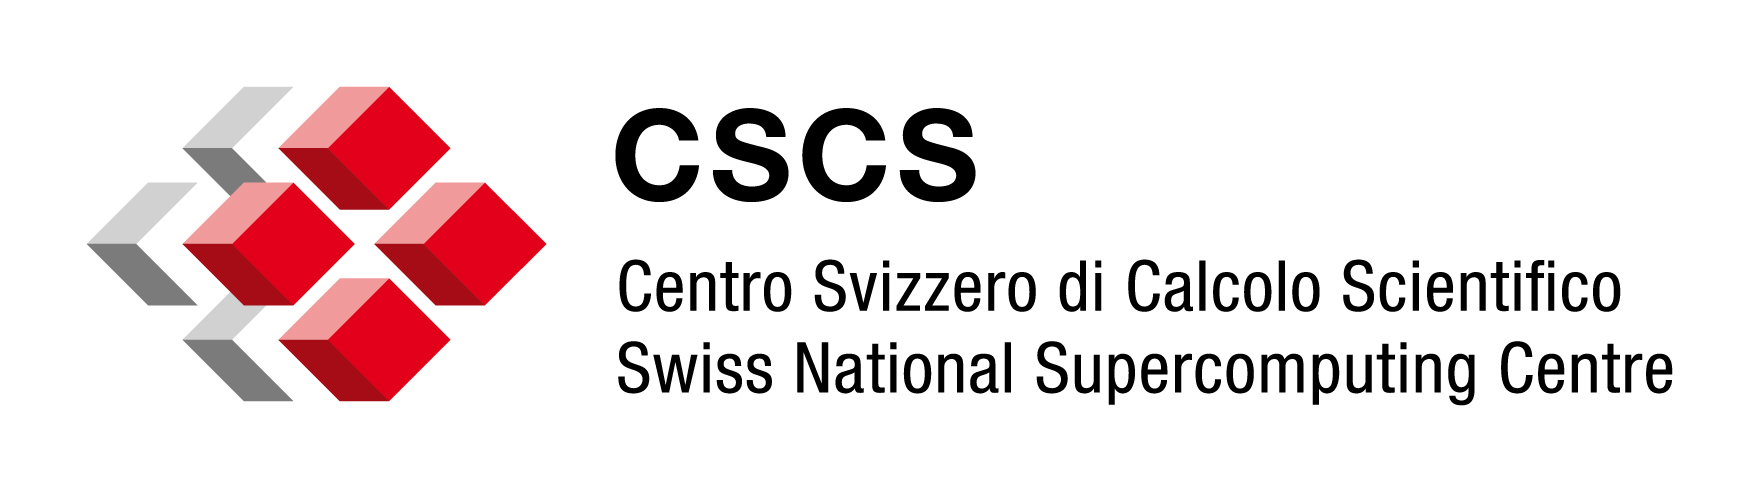 CSCS Second Call for Proposals 2016 – Allocation period starting on 1 October 2016